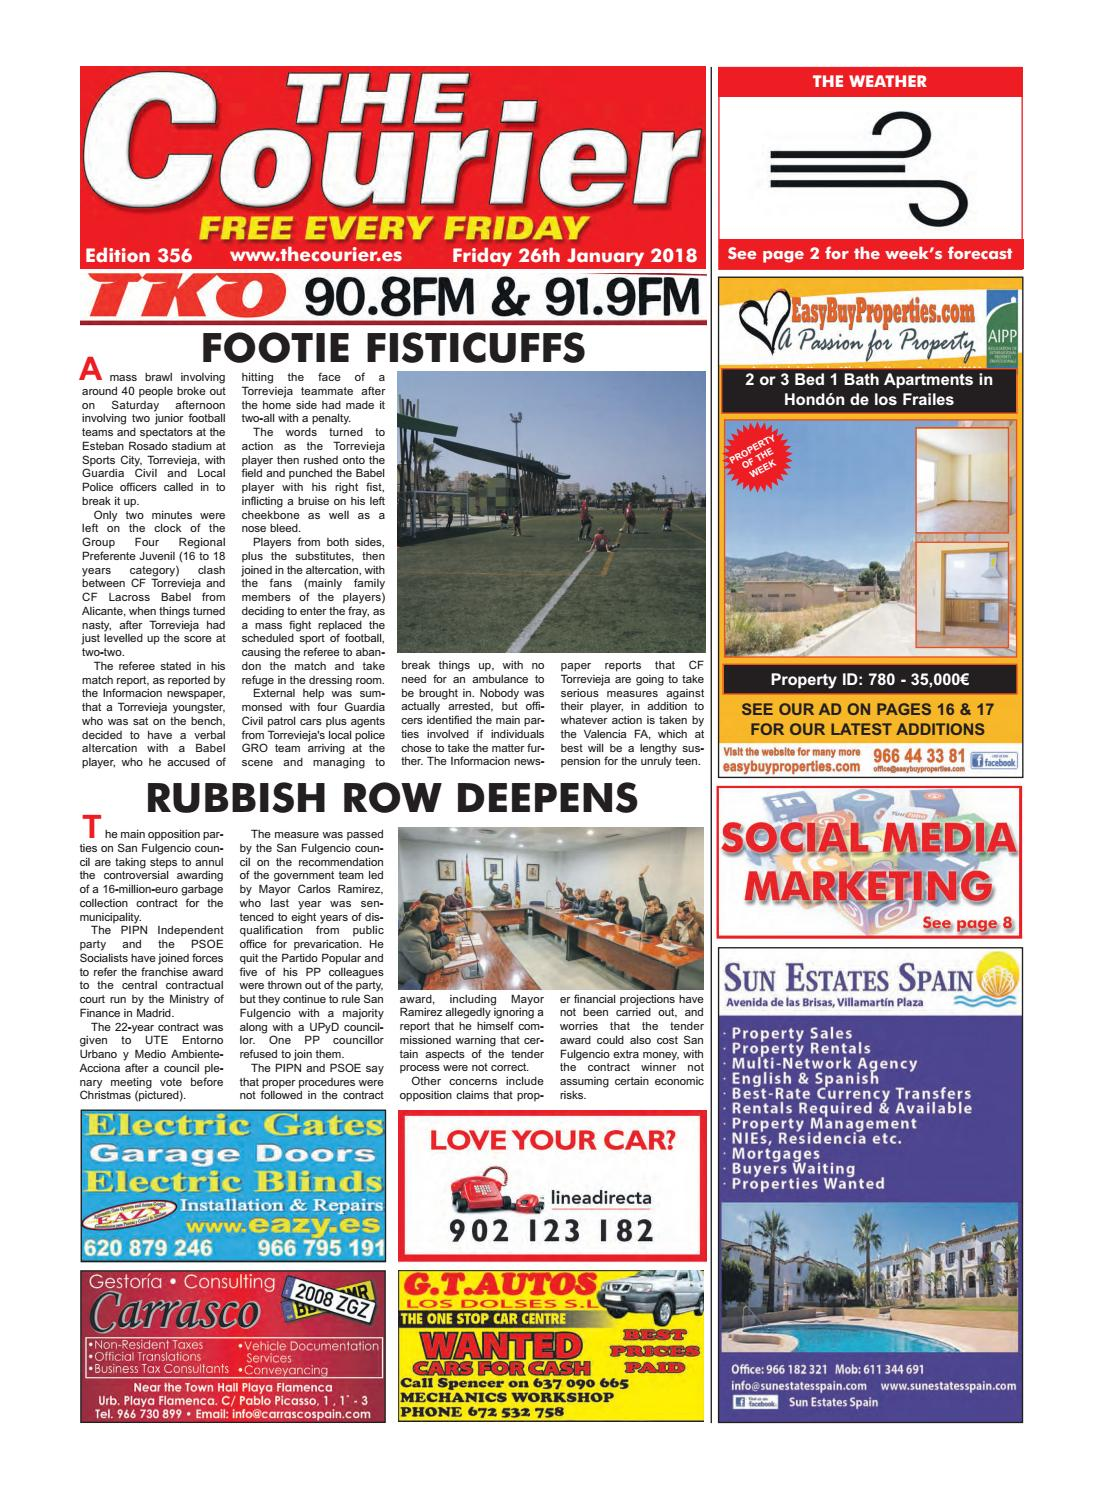 The Courier 356 By The Courier Newspaper Issuu